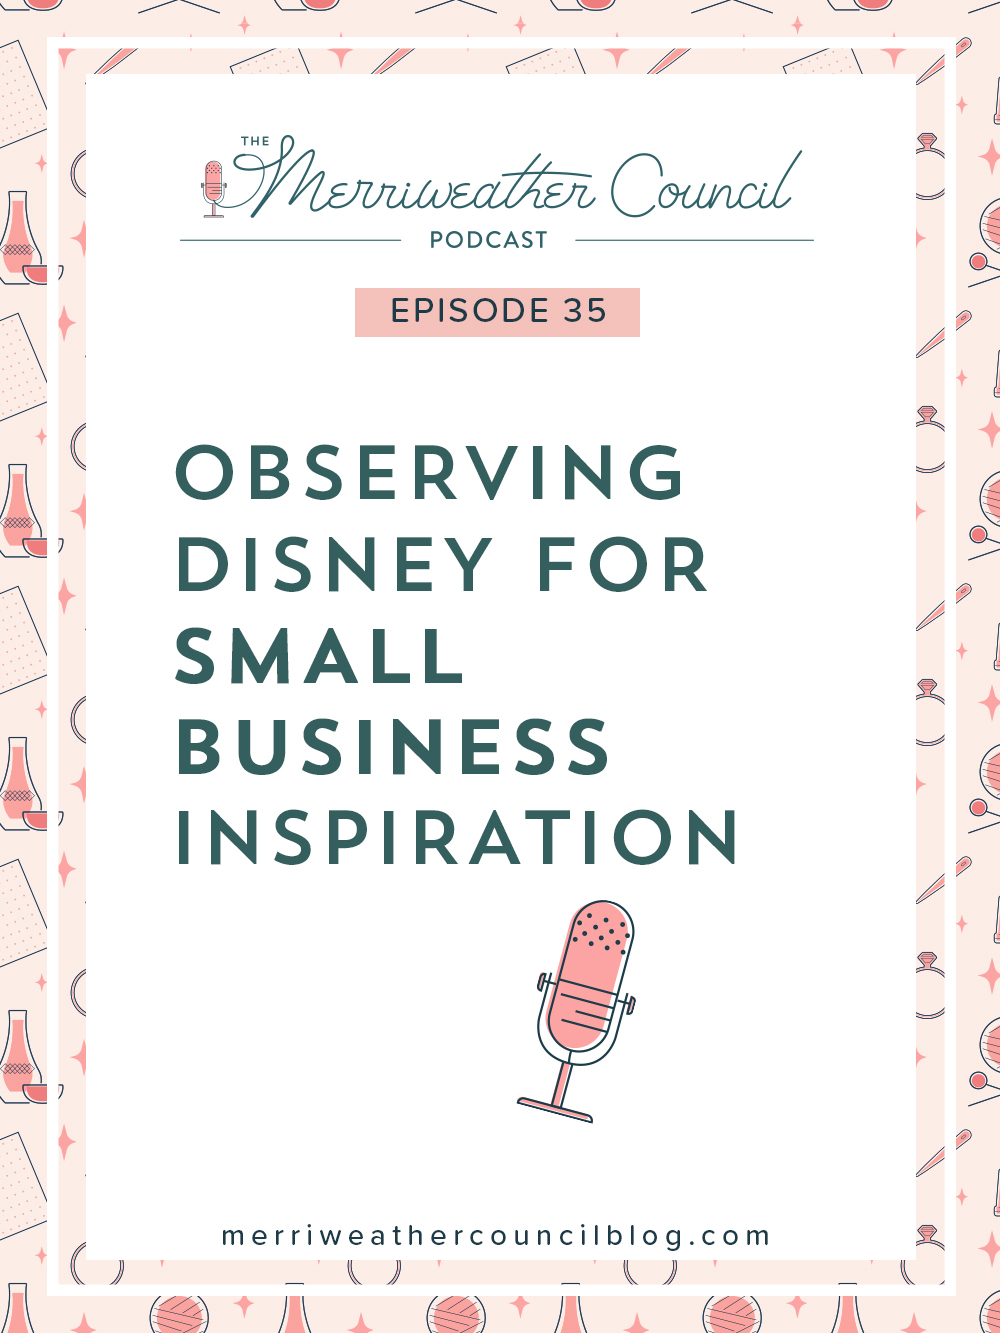 Episode 35: Observing Disney for Small Biz Inspiration | The Merriweather Council Podcast